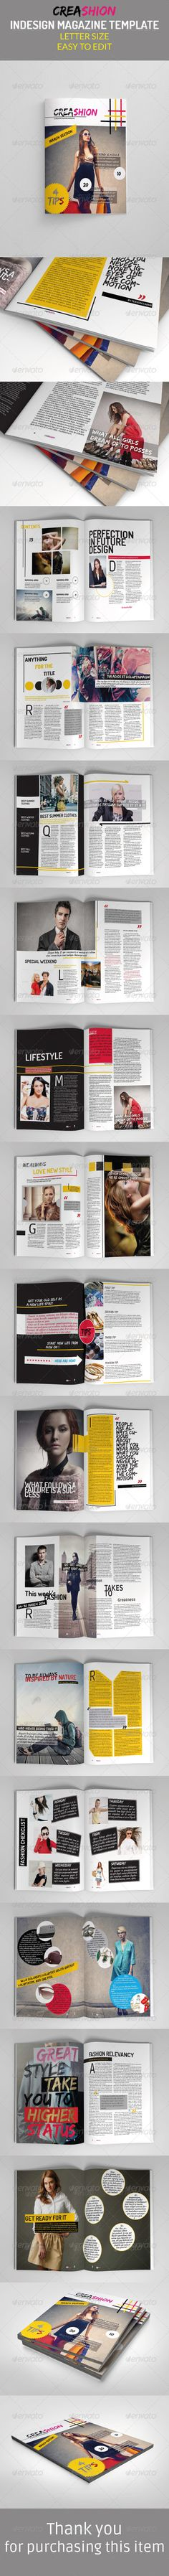 Creative Fashion Magazine by WattCore Multipurpose Creative Fashion MagzThis is a professional and creative InDesign magazine template that can be used forany type of i